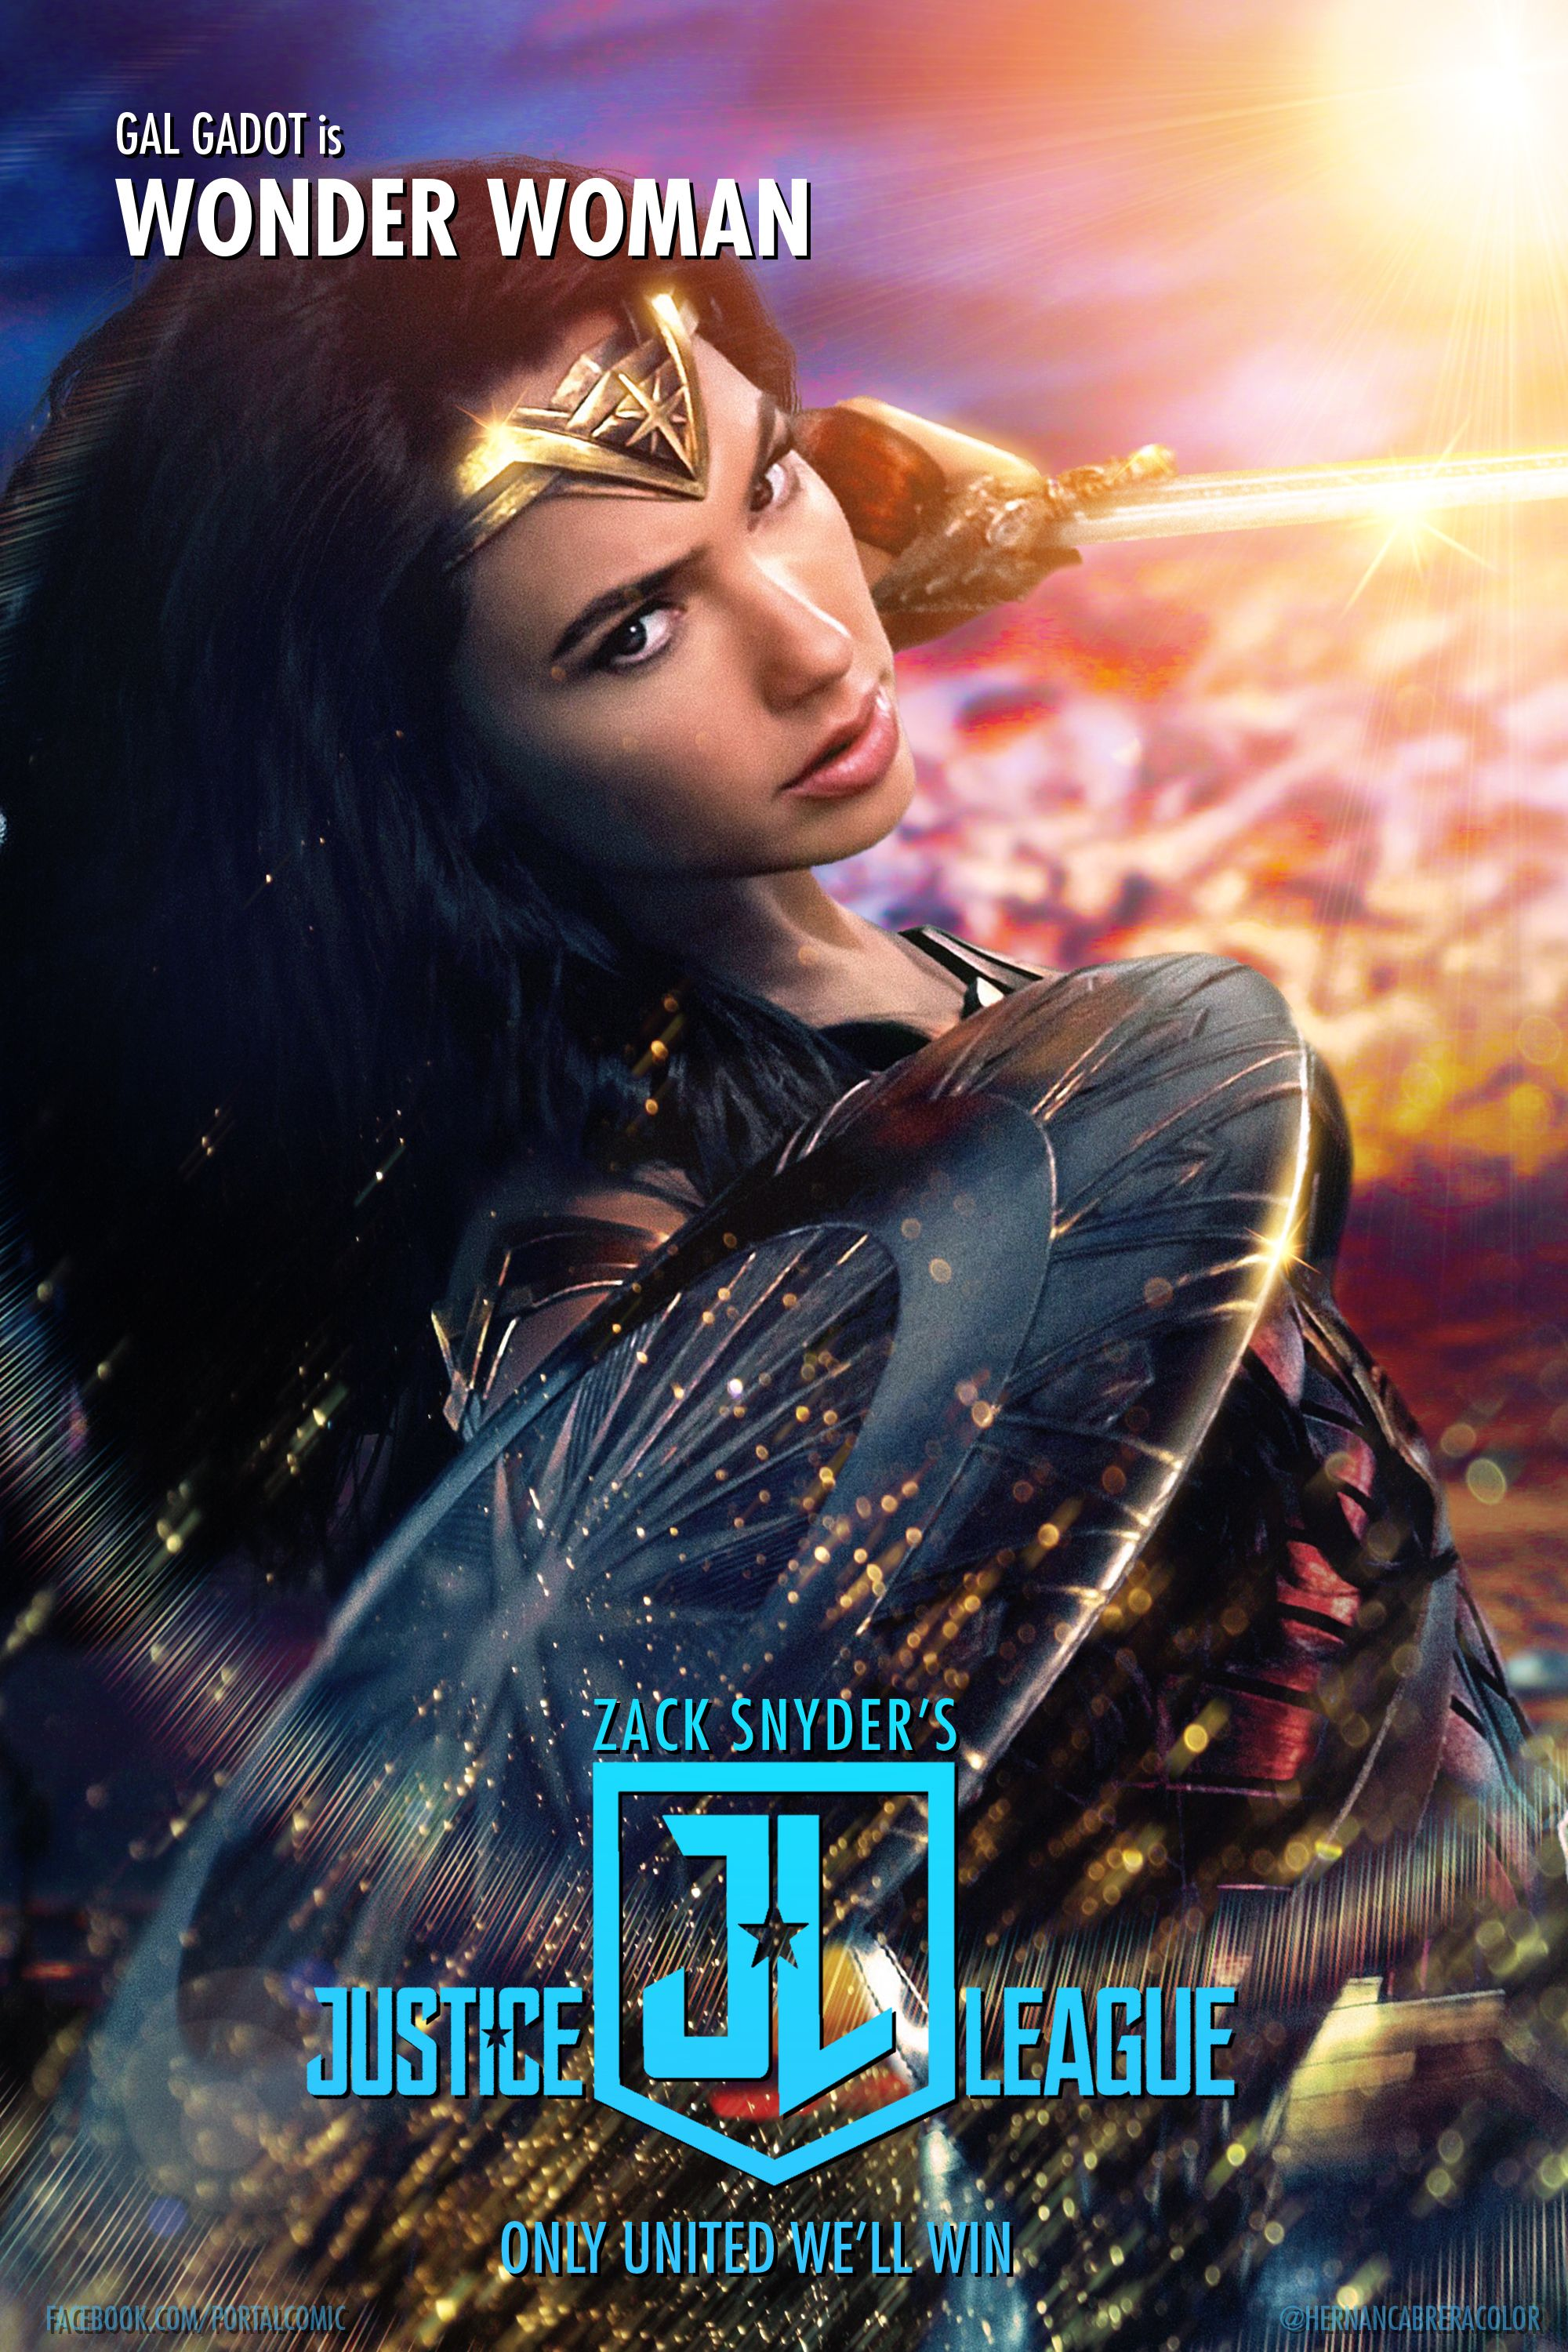 Zack Snyder S Justice League Wonder Woman By Portalcomic On Deviantart In 2021 Justice League Wonder Woman Justice League Justice League Art